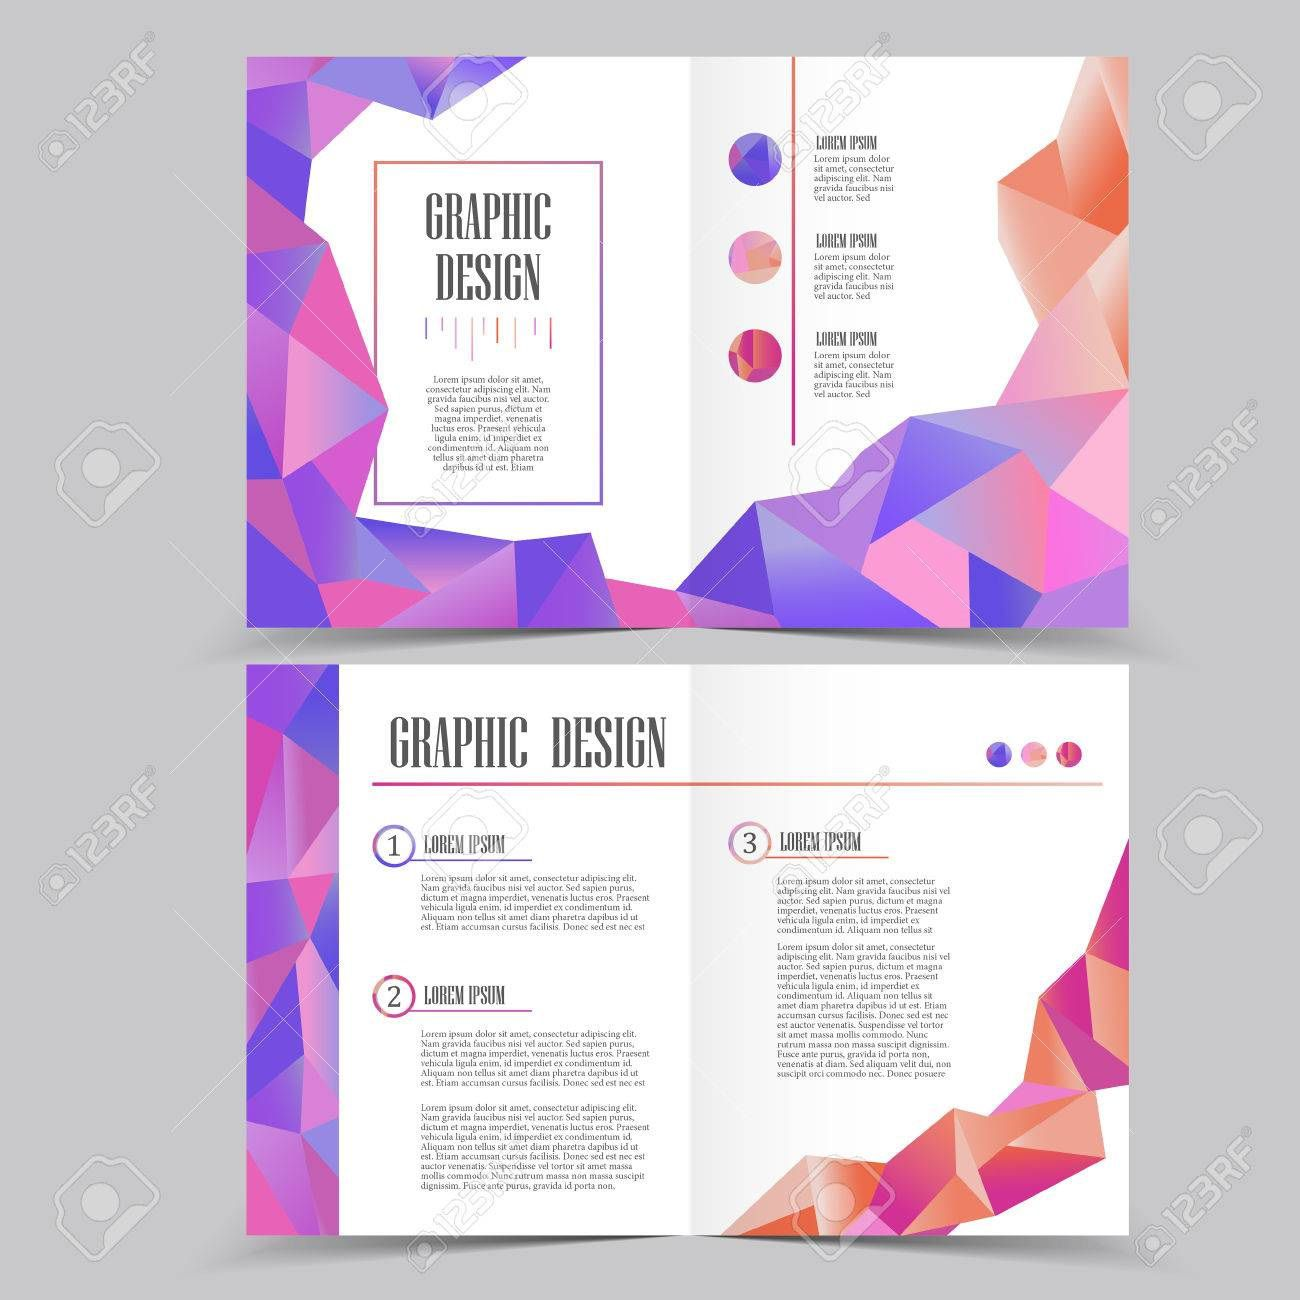 005 Magnificent Half Fold Brochure Template High Resolution  Free Microsoft Word IndesignFull